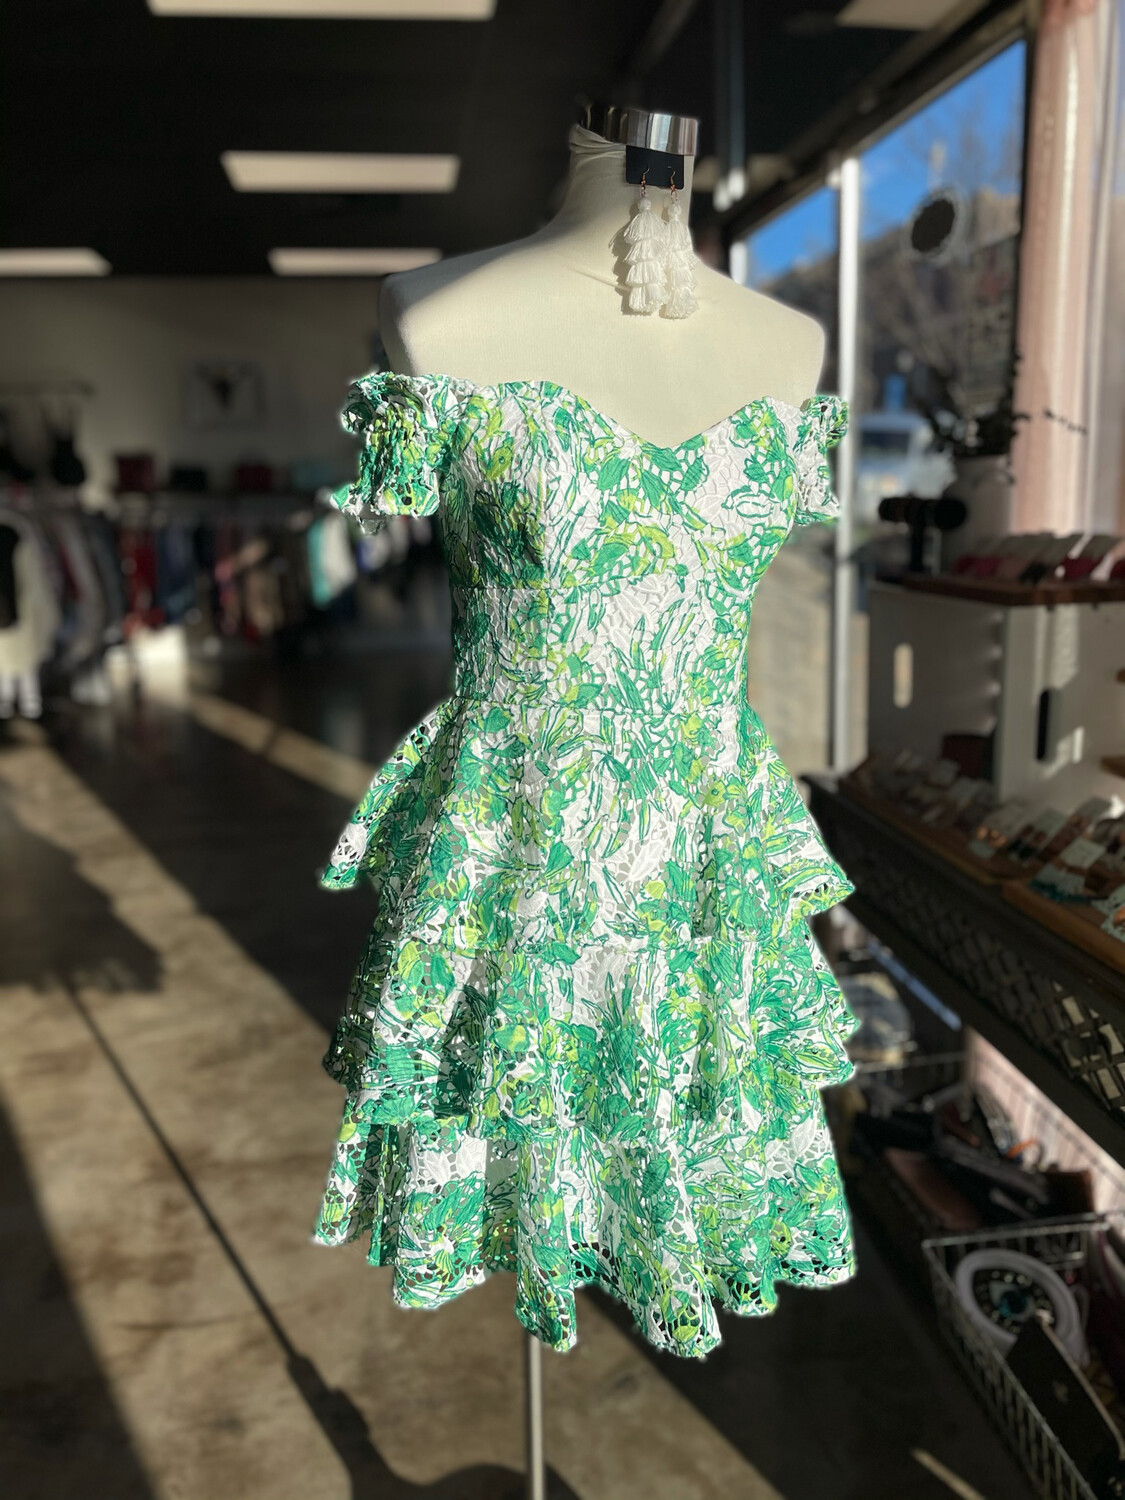 Lilly Pulitzer Green & White Patterned Layer Dress - Size 4